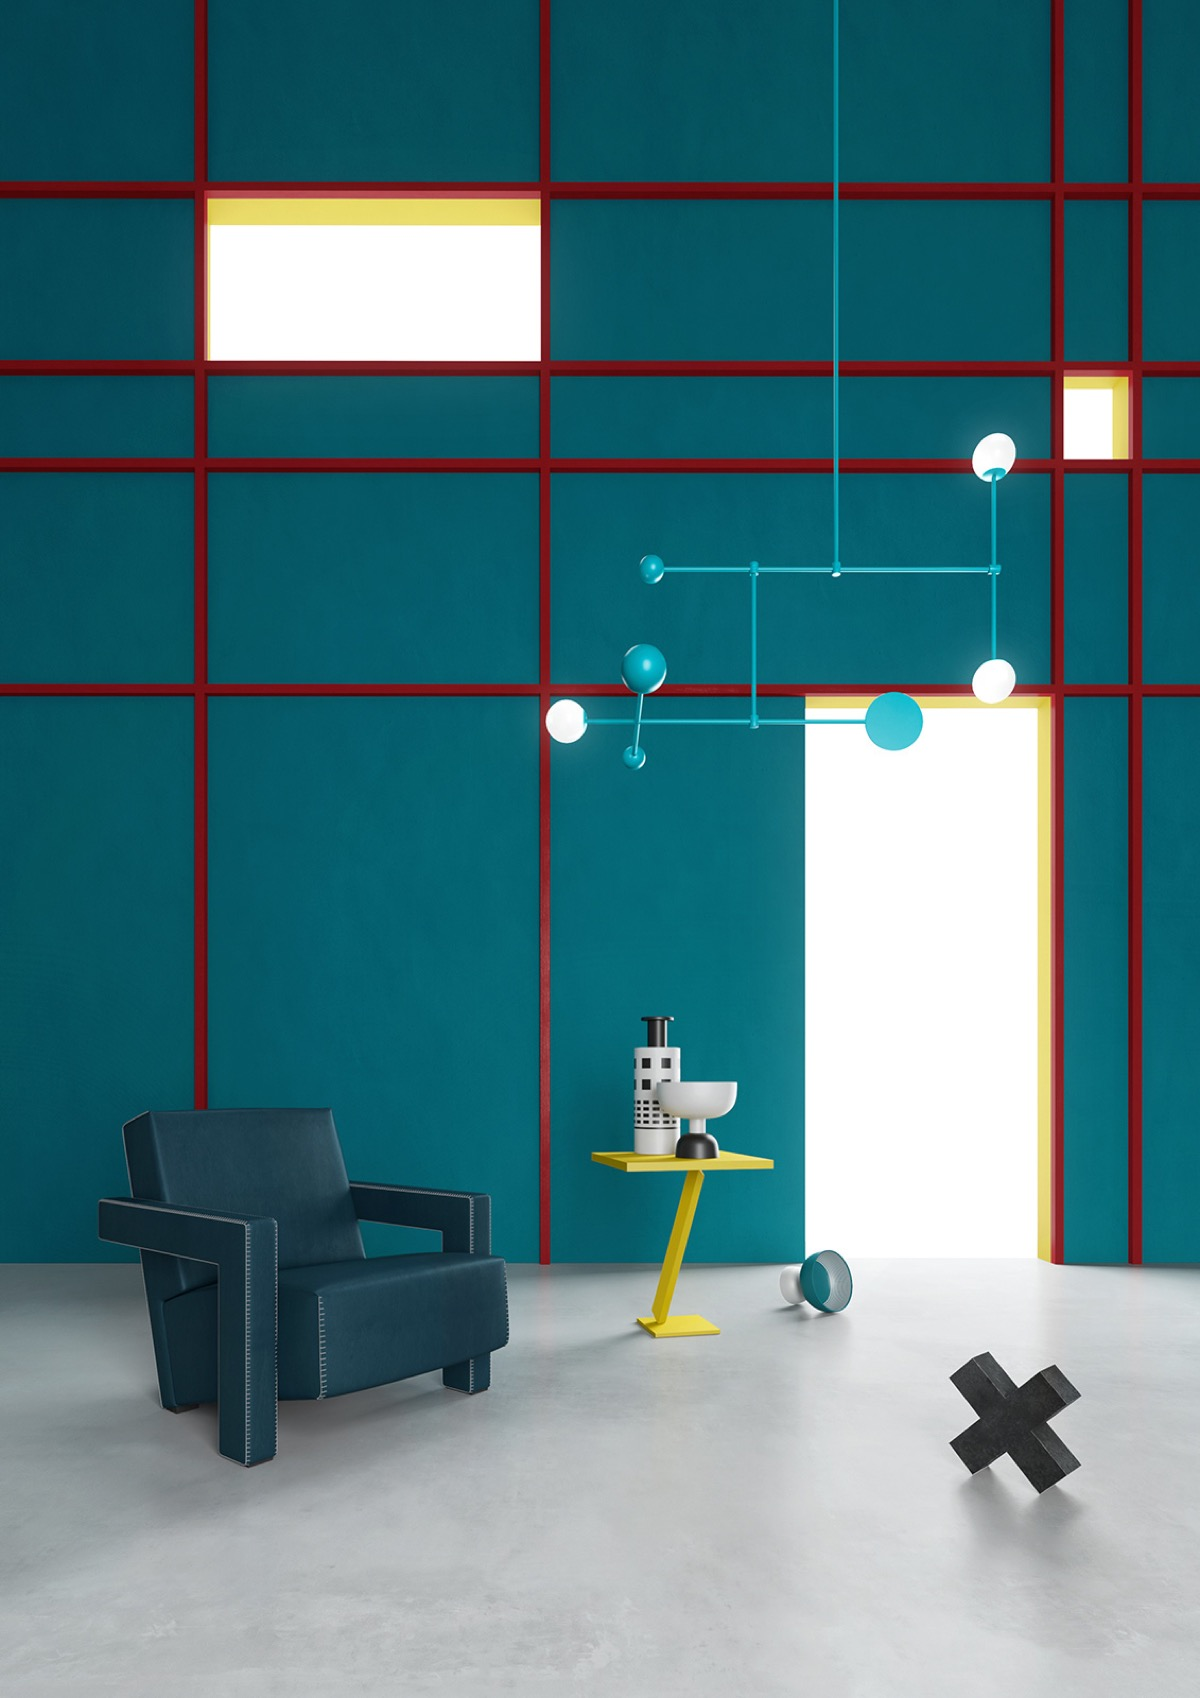 Piet Mondrian Inspired Interior Design To Give Your Home The De Stijl Flair images 12